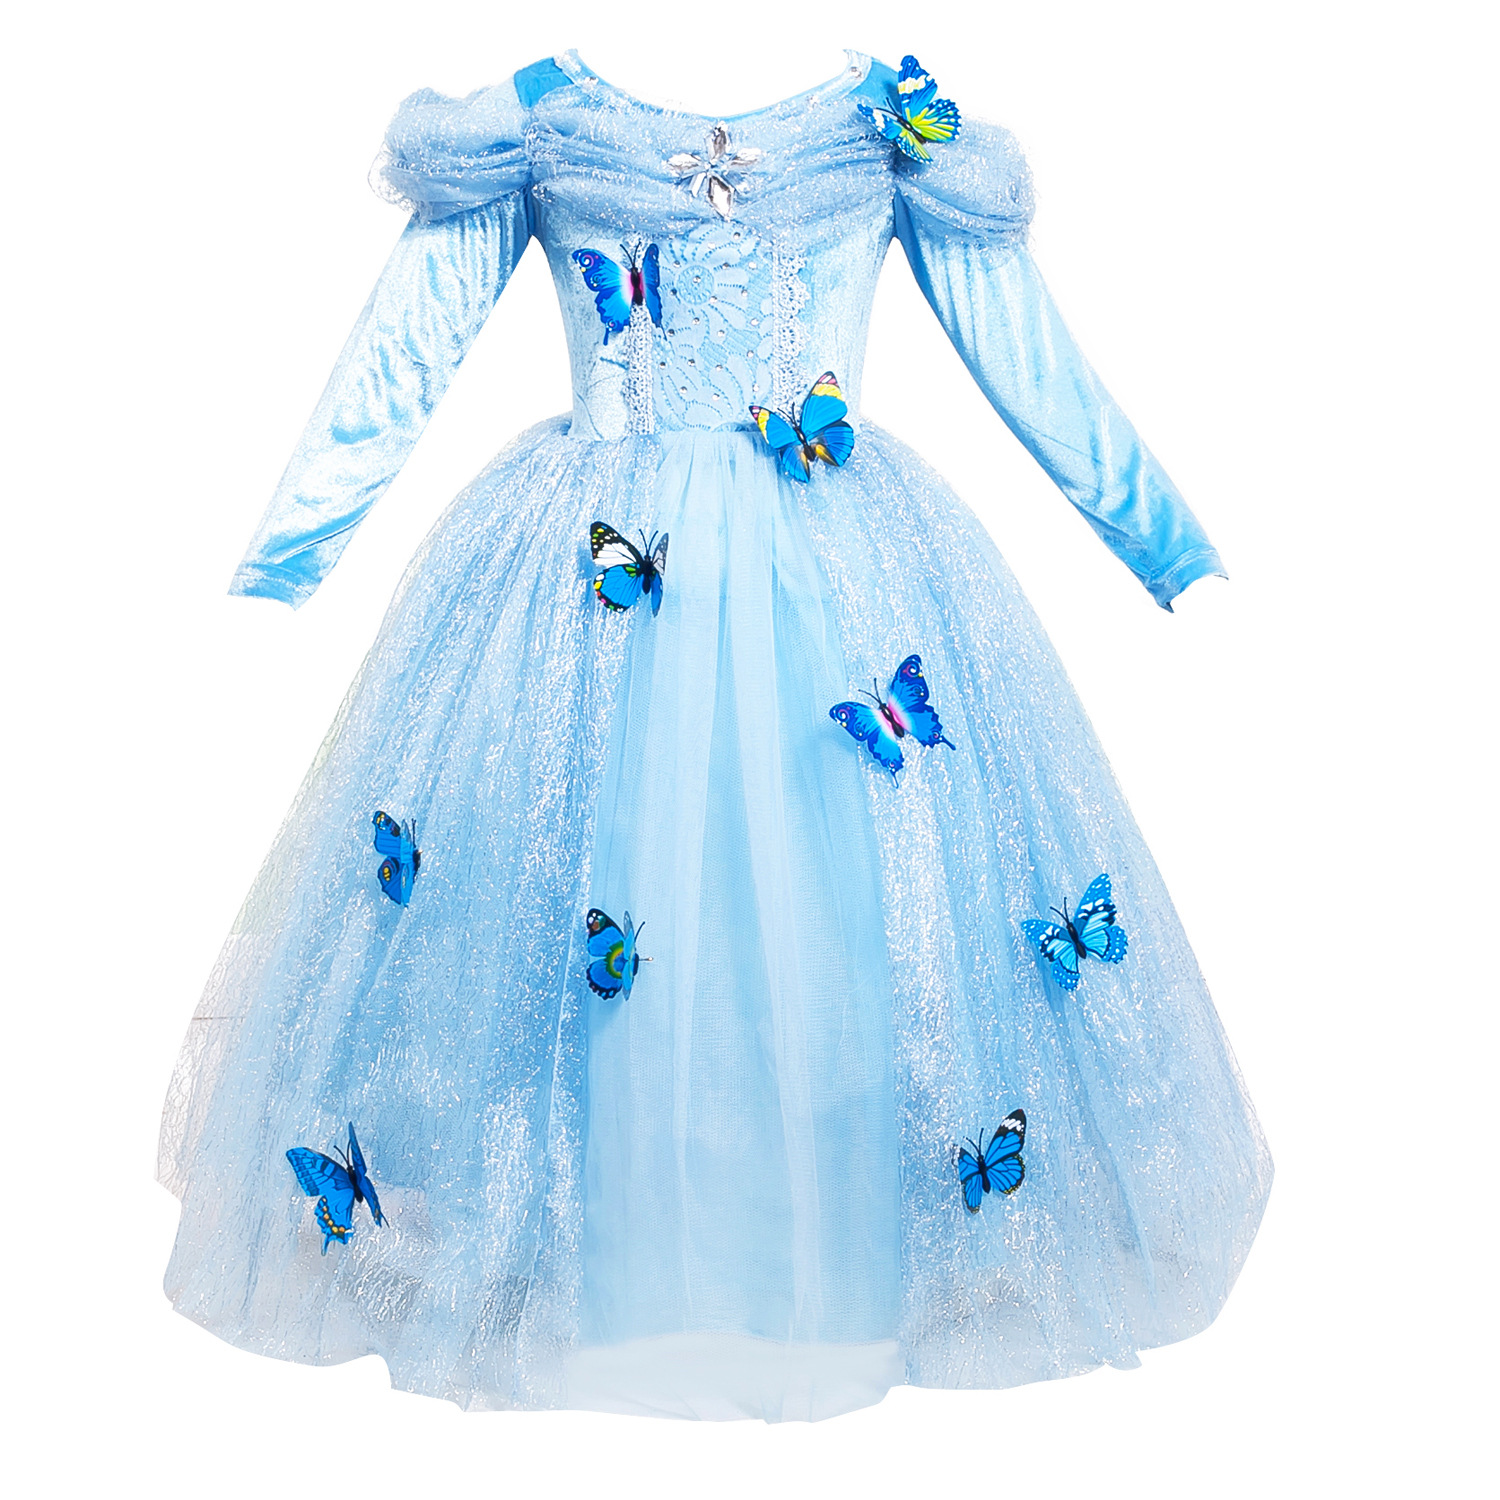 33cd509add2b Girls Princess Birthday Dresses for Toddlers 3-12 Years Old Light Blue Long  Sleeved Girls Fancy Dress Carnaval Costumes for Kids